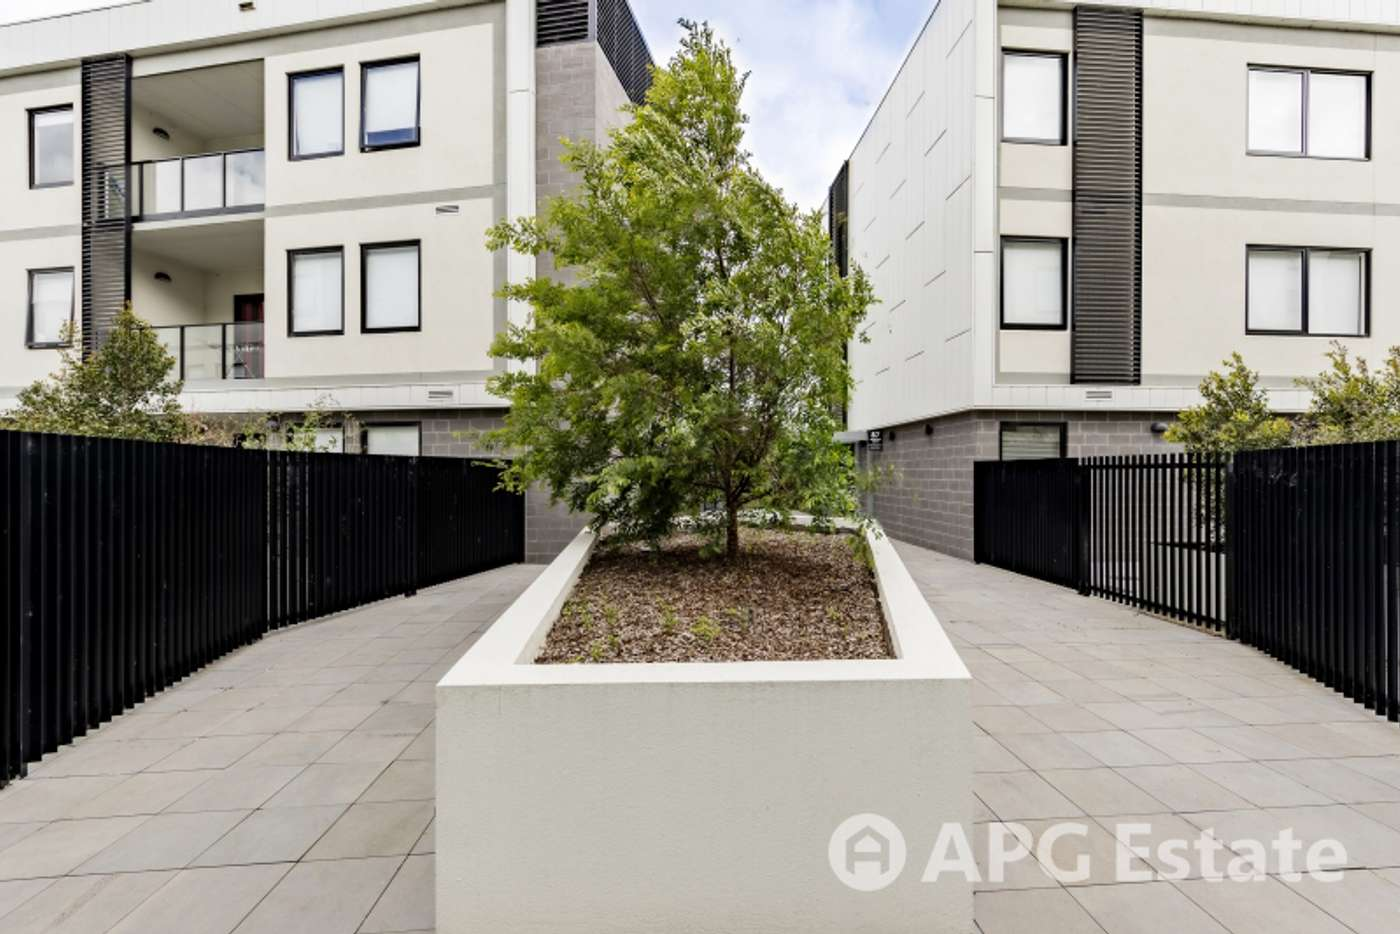 Main view of Homely apartment listing, 208/87 Janefield Drive, Bundoora VIC 3083